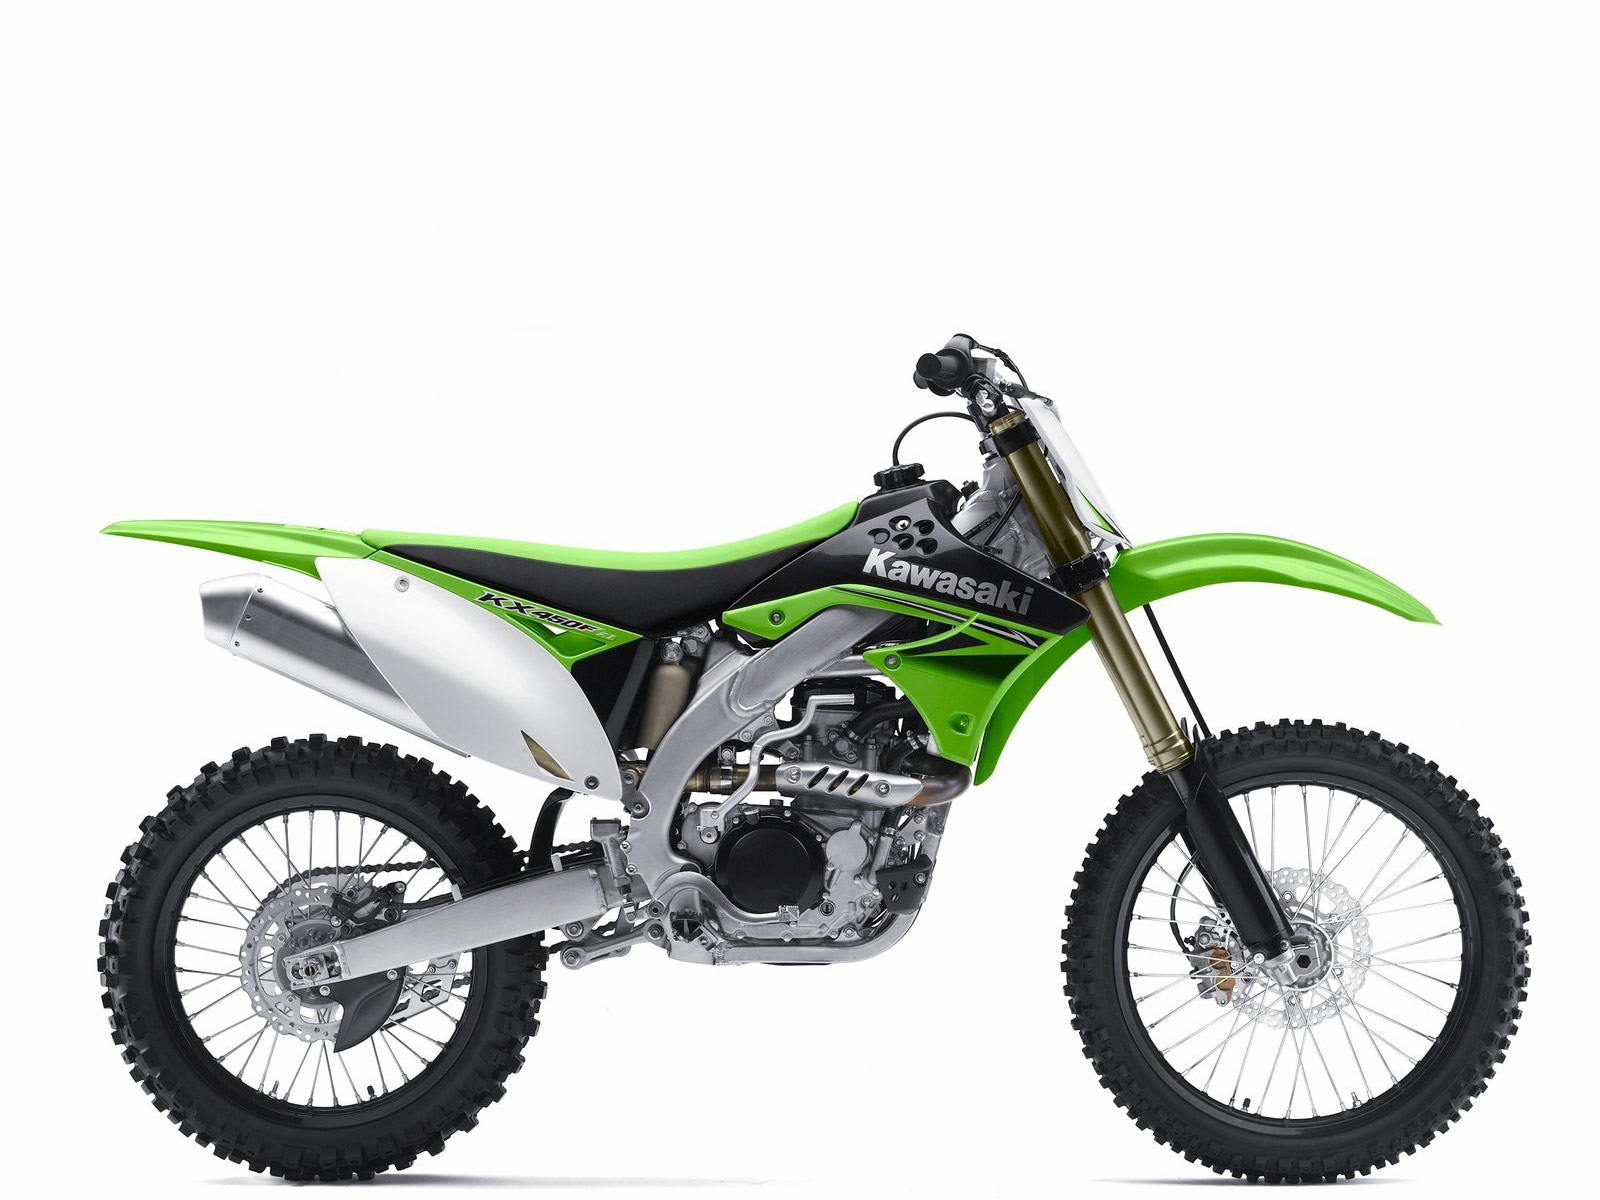 Auto Njamping: The Best Kawasaki KX450F Monster Energy